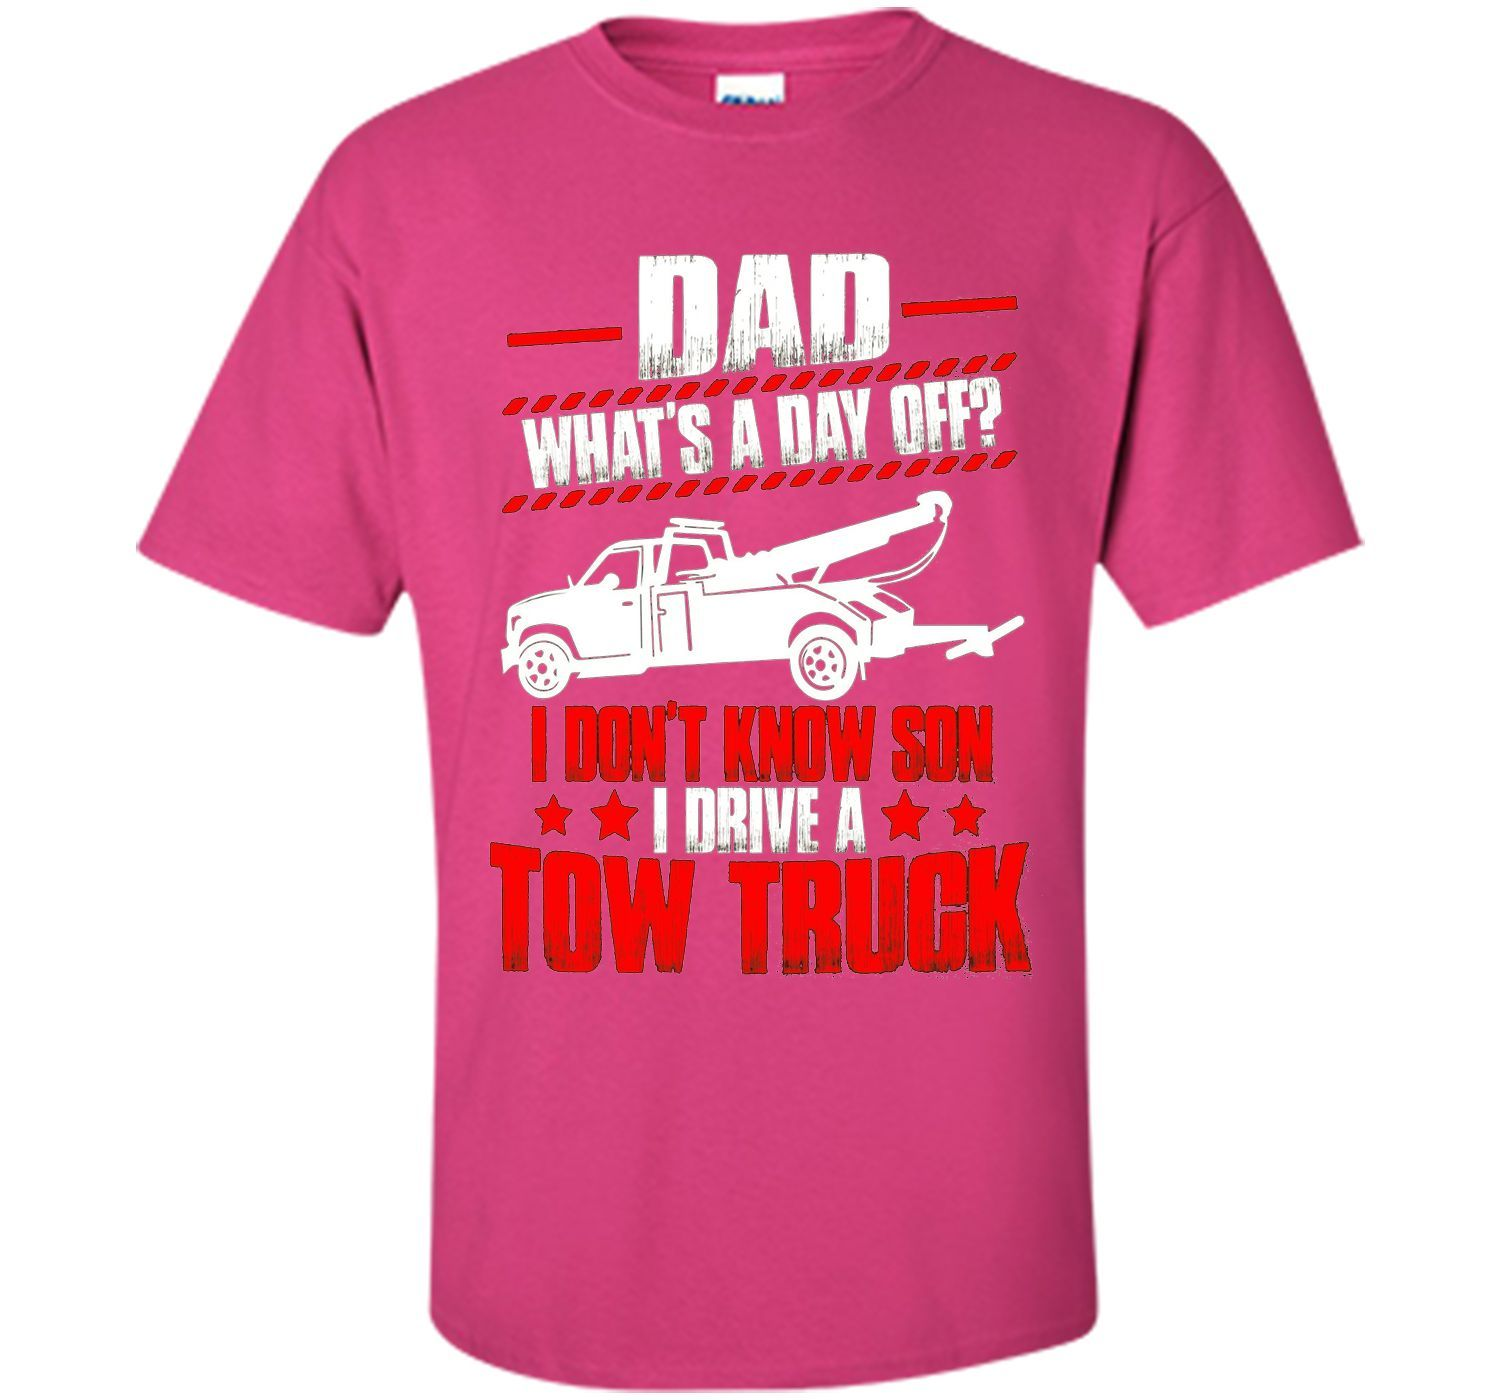 Best T-Shirt For Tow Trucker. Father's Day Gift From Son.